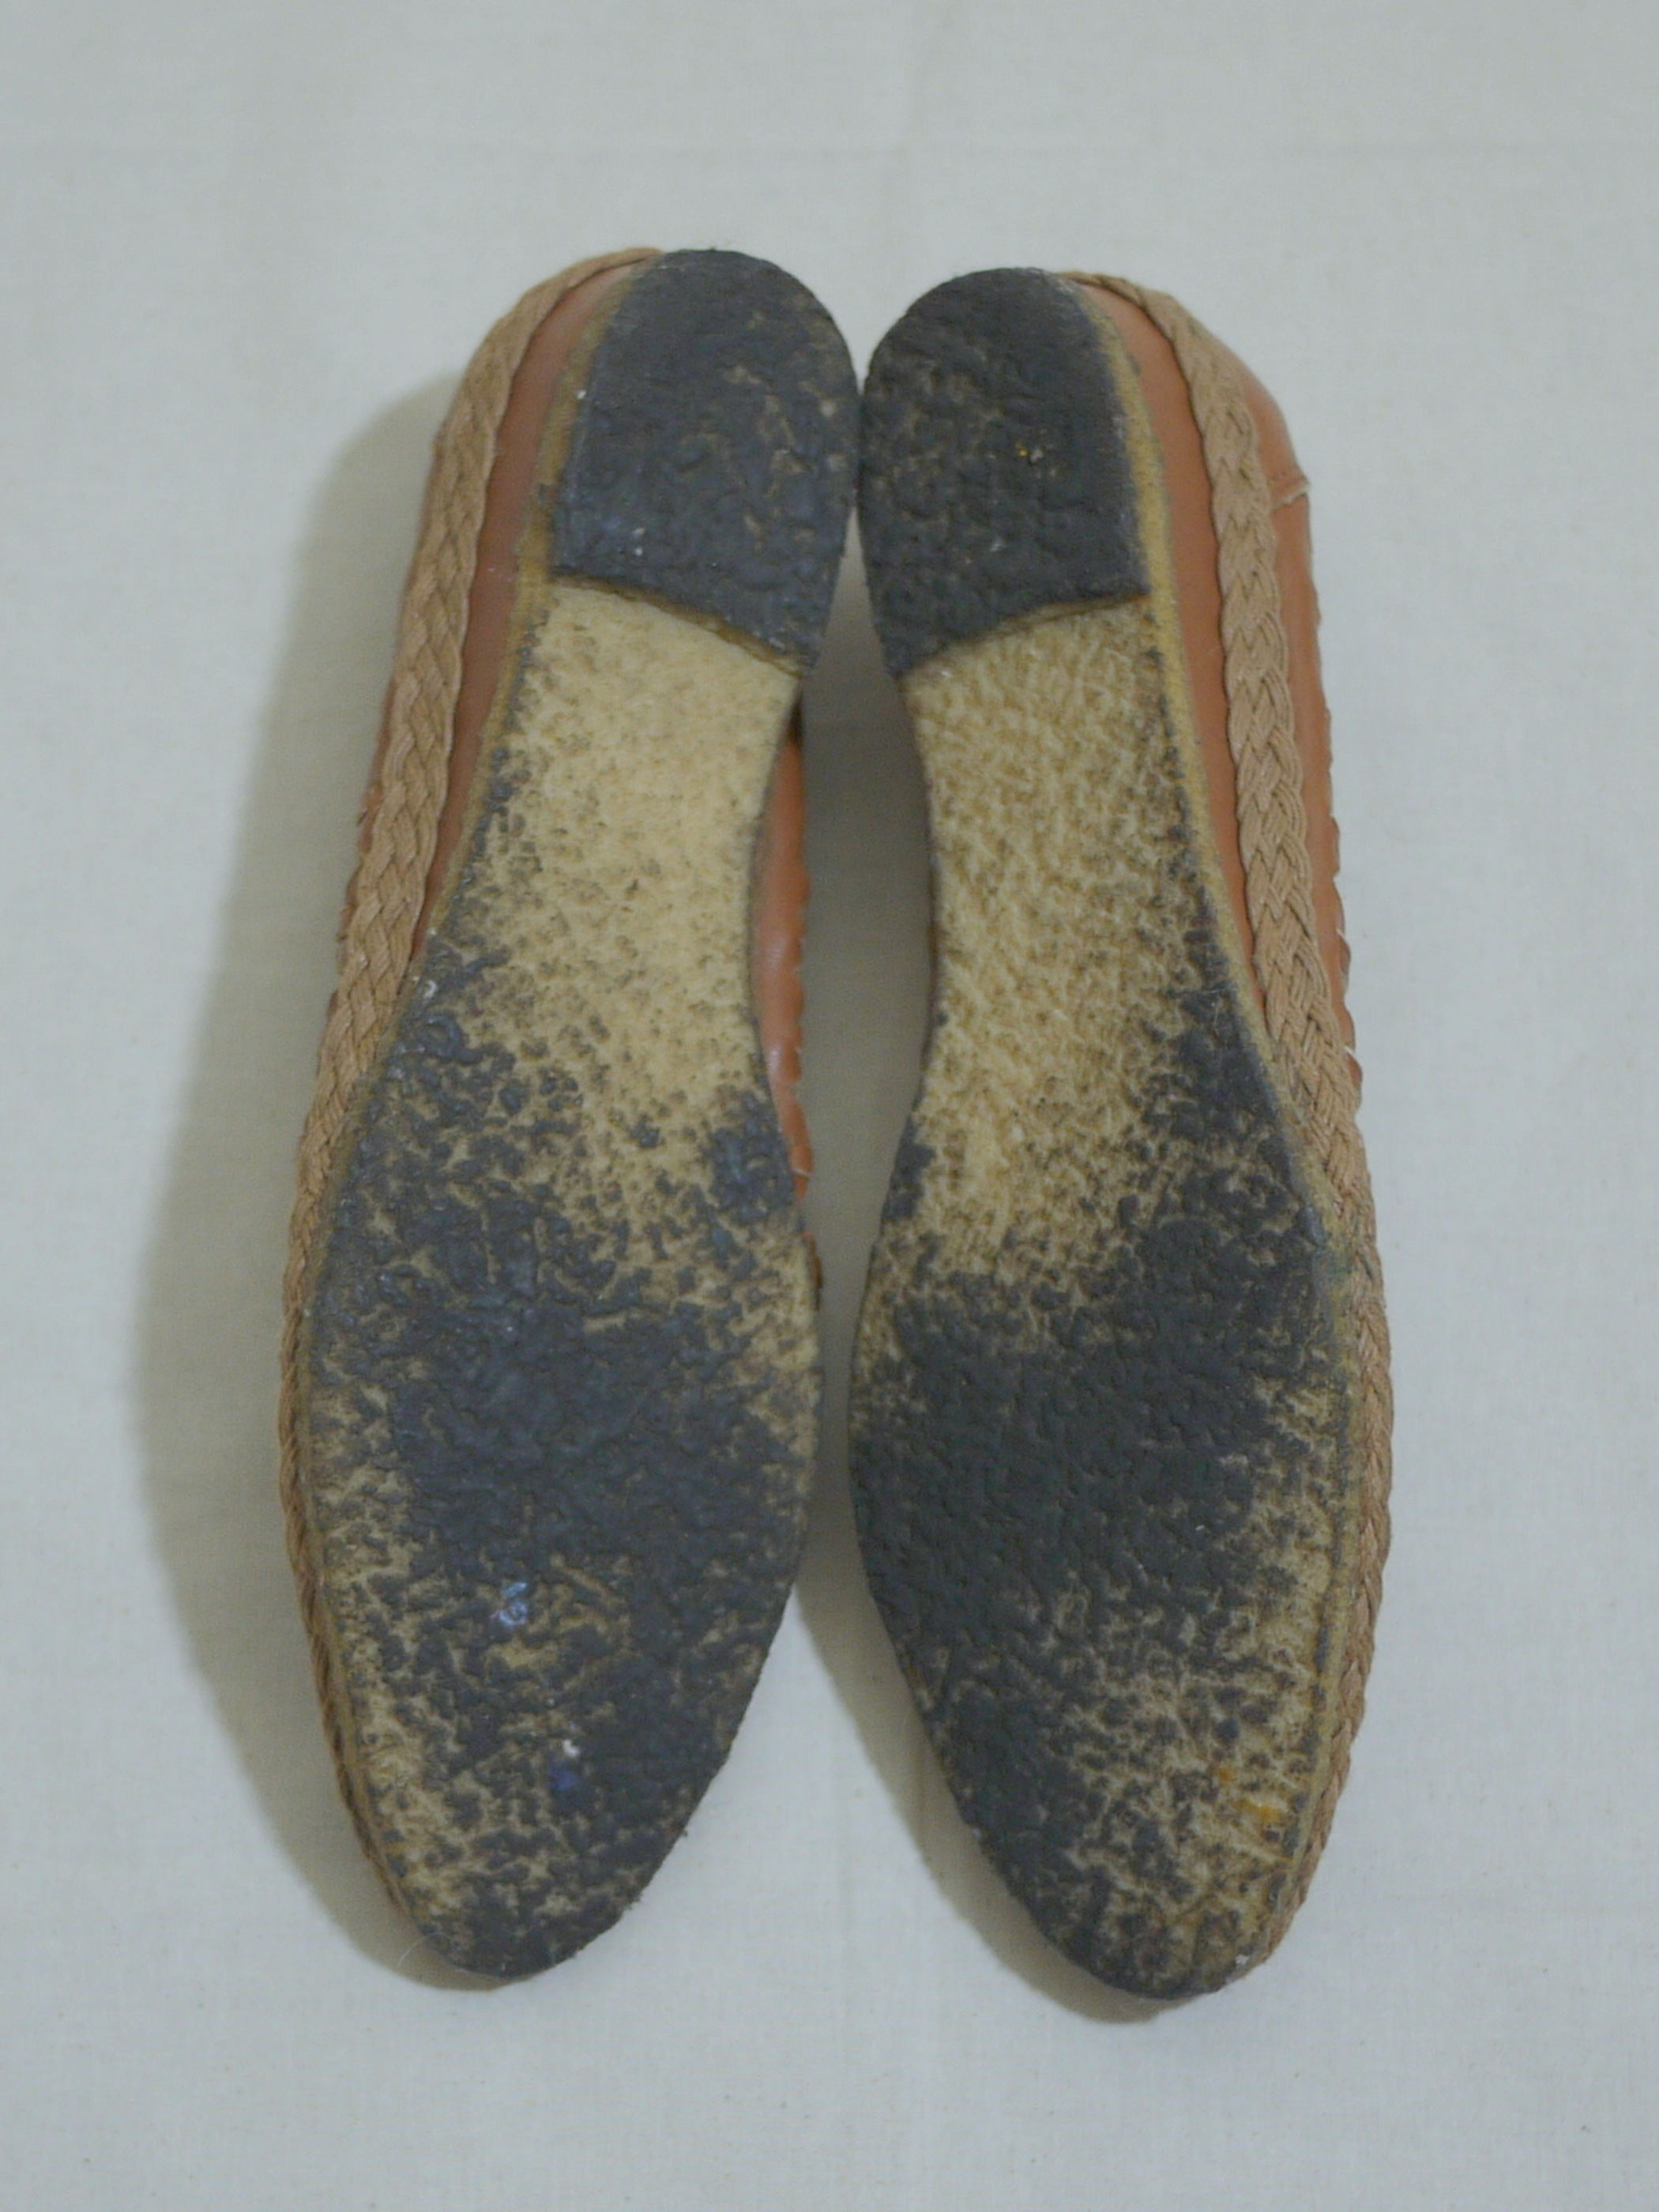 BALLY Leather shoes Size7 1/2